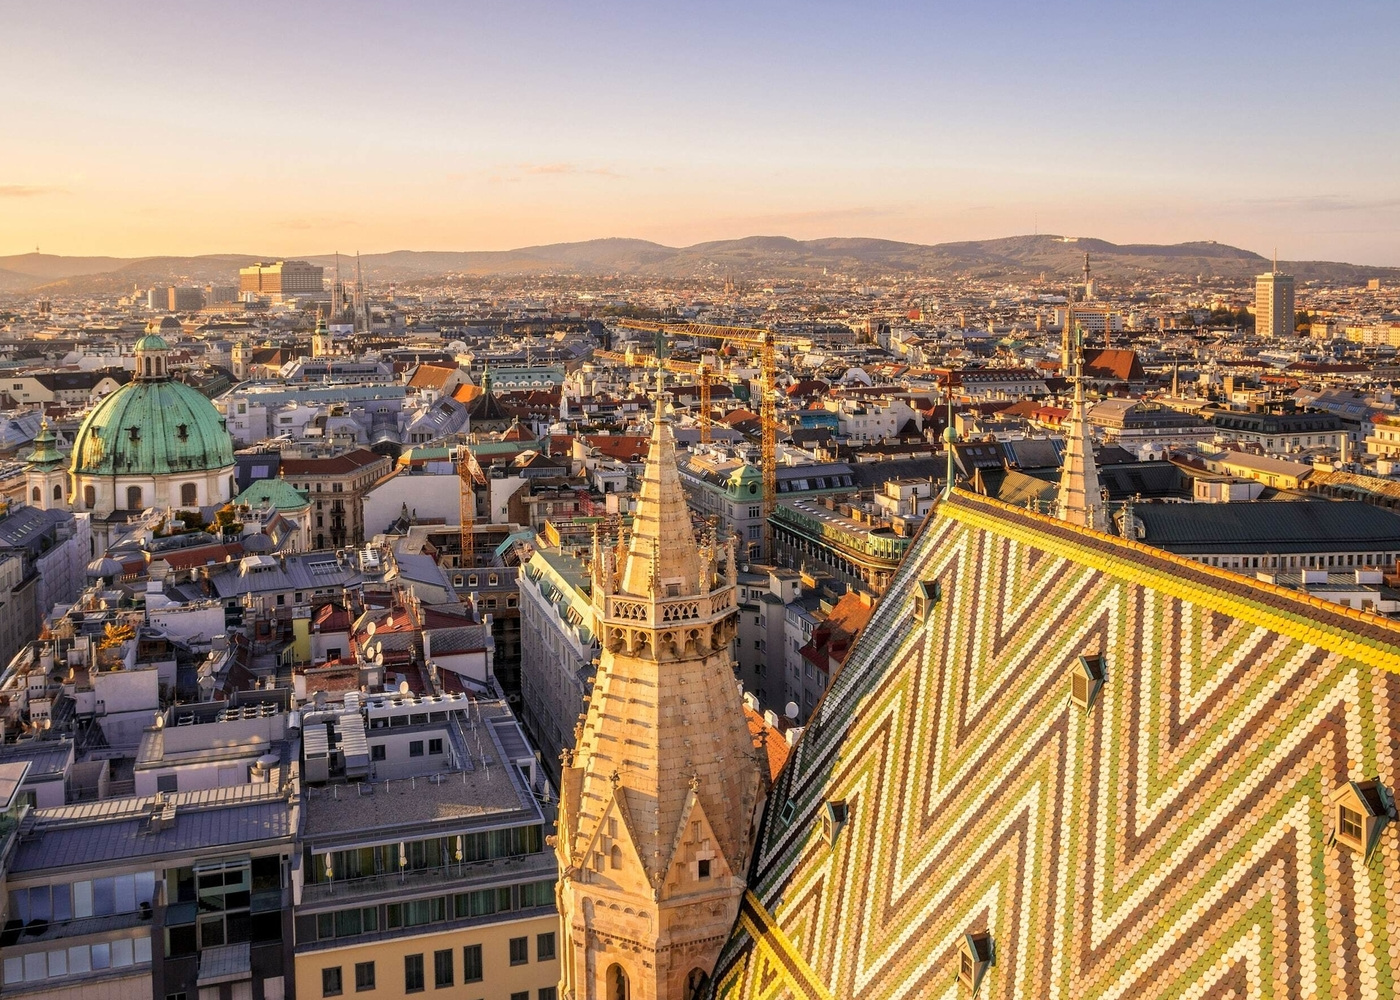 [City spotlight] How are hotels in Vienna preparing for the lifting of travel restrictions?